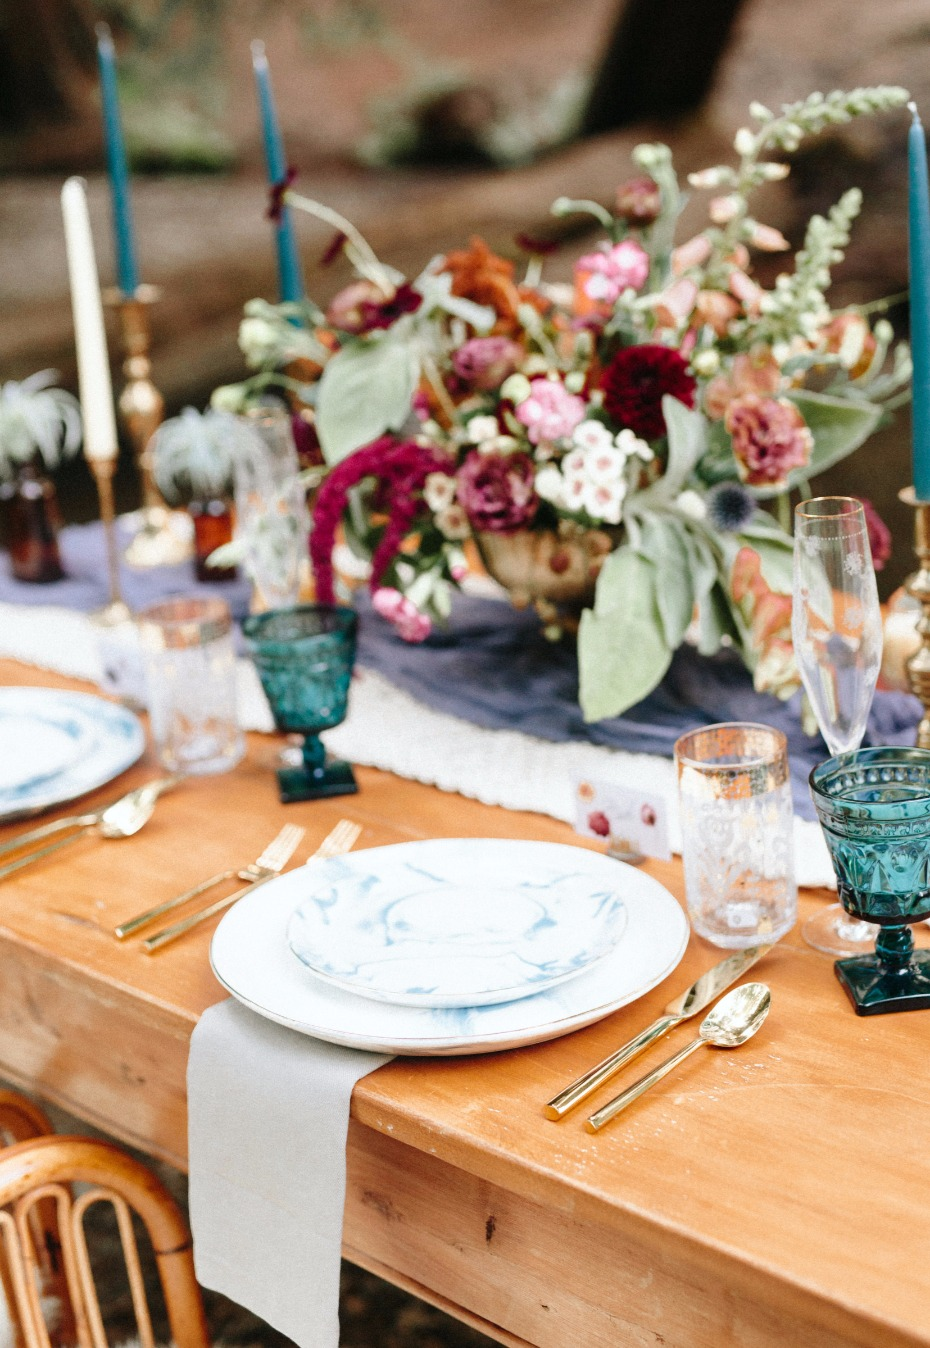 mismatched wedding table decor give the table a shabby chic quality